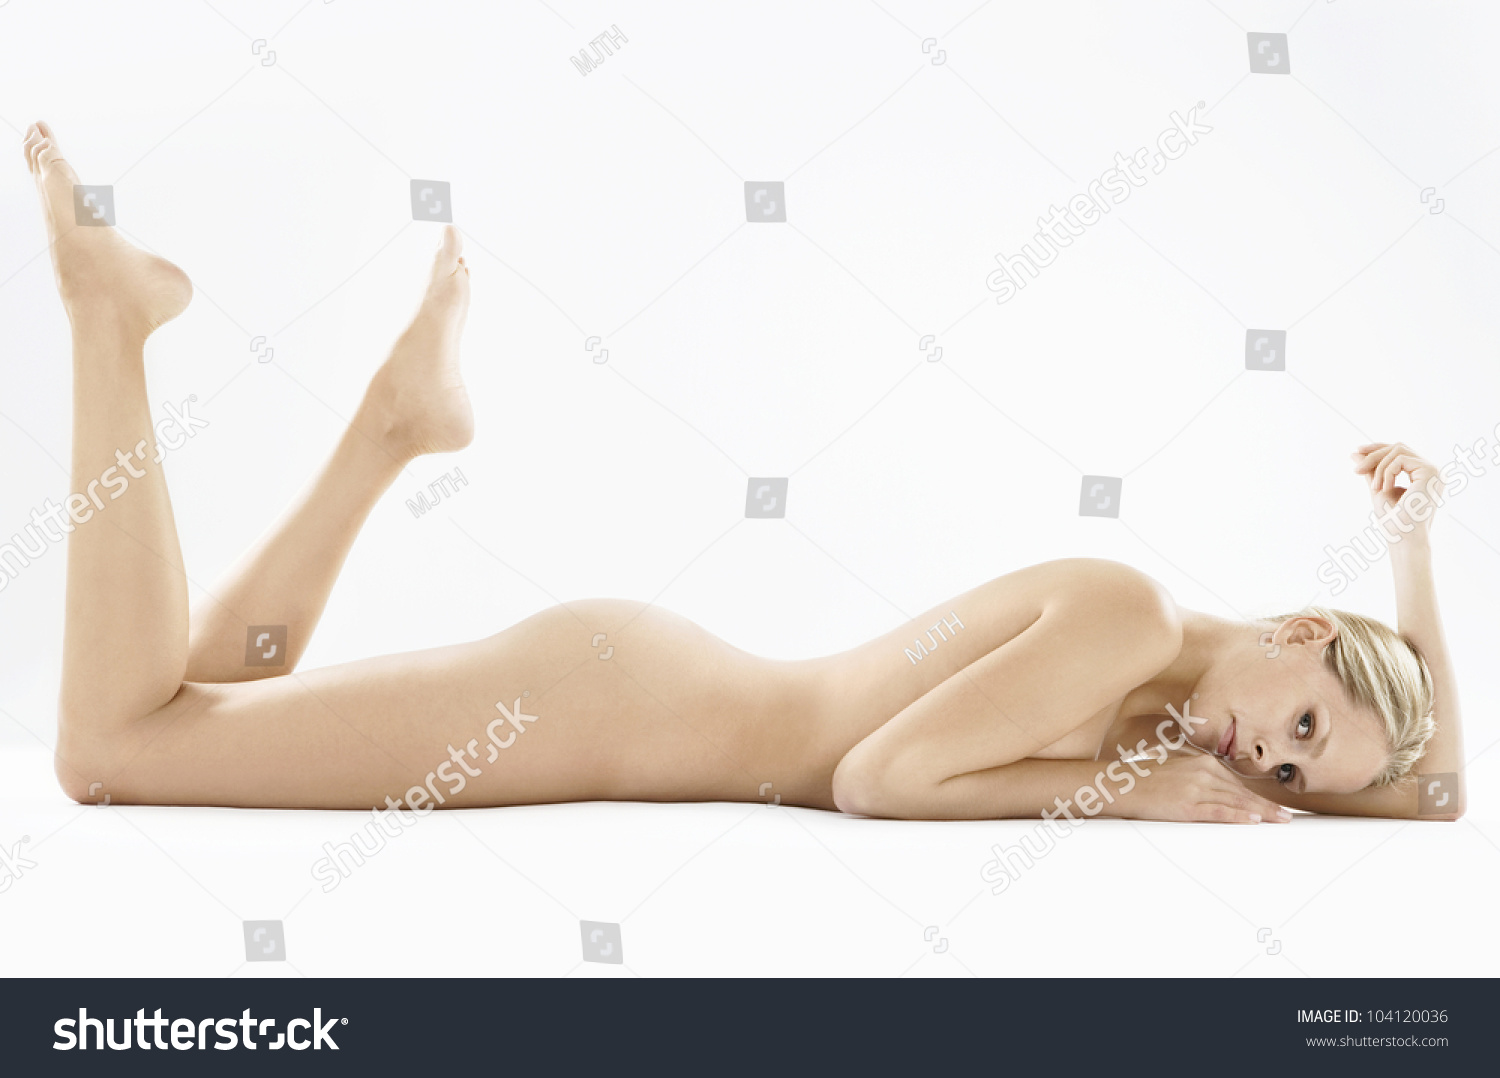 Nude women with needle through pussy